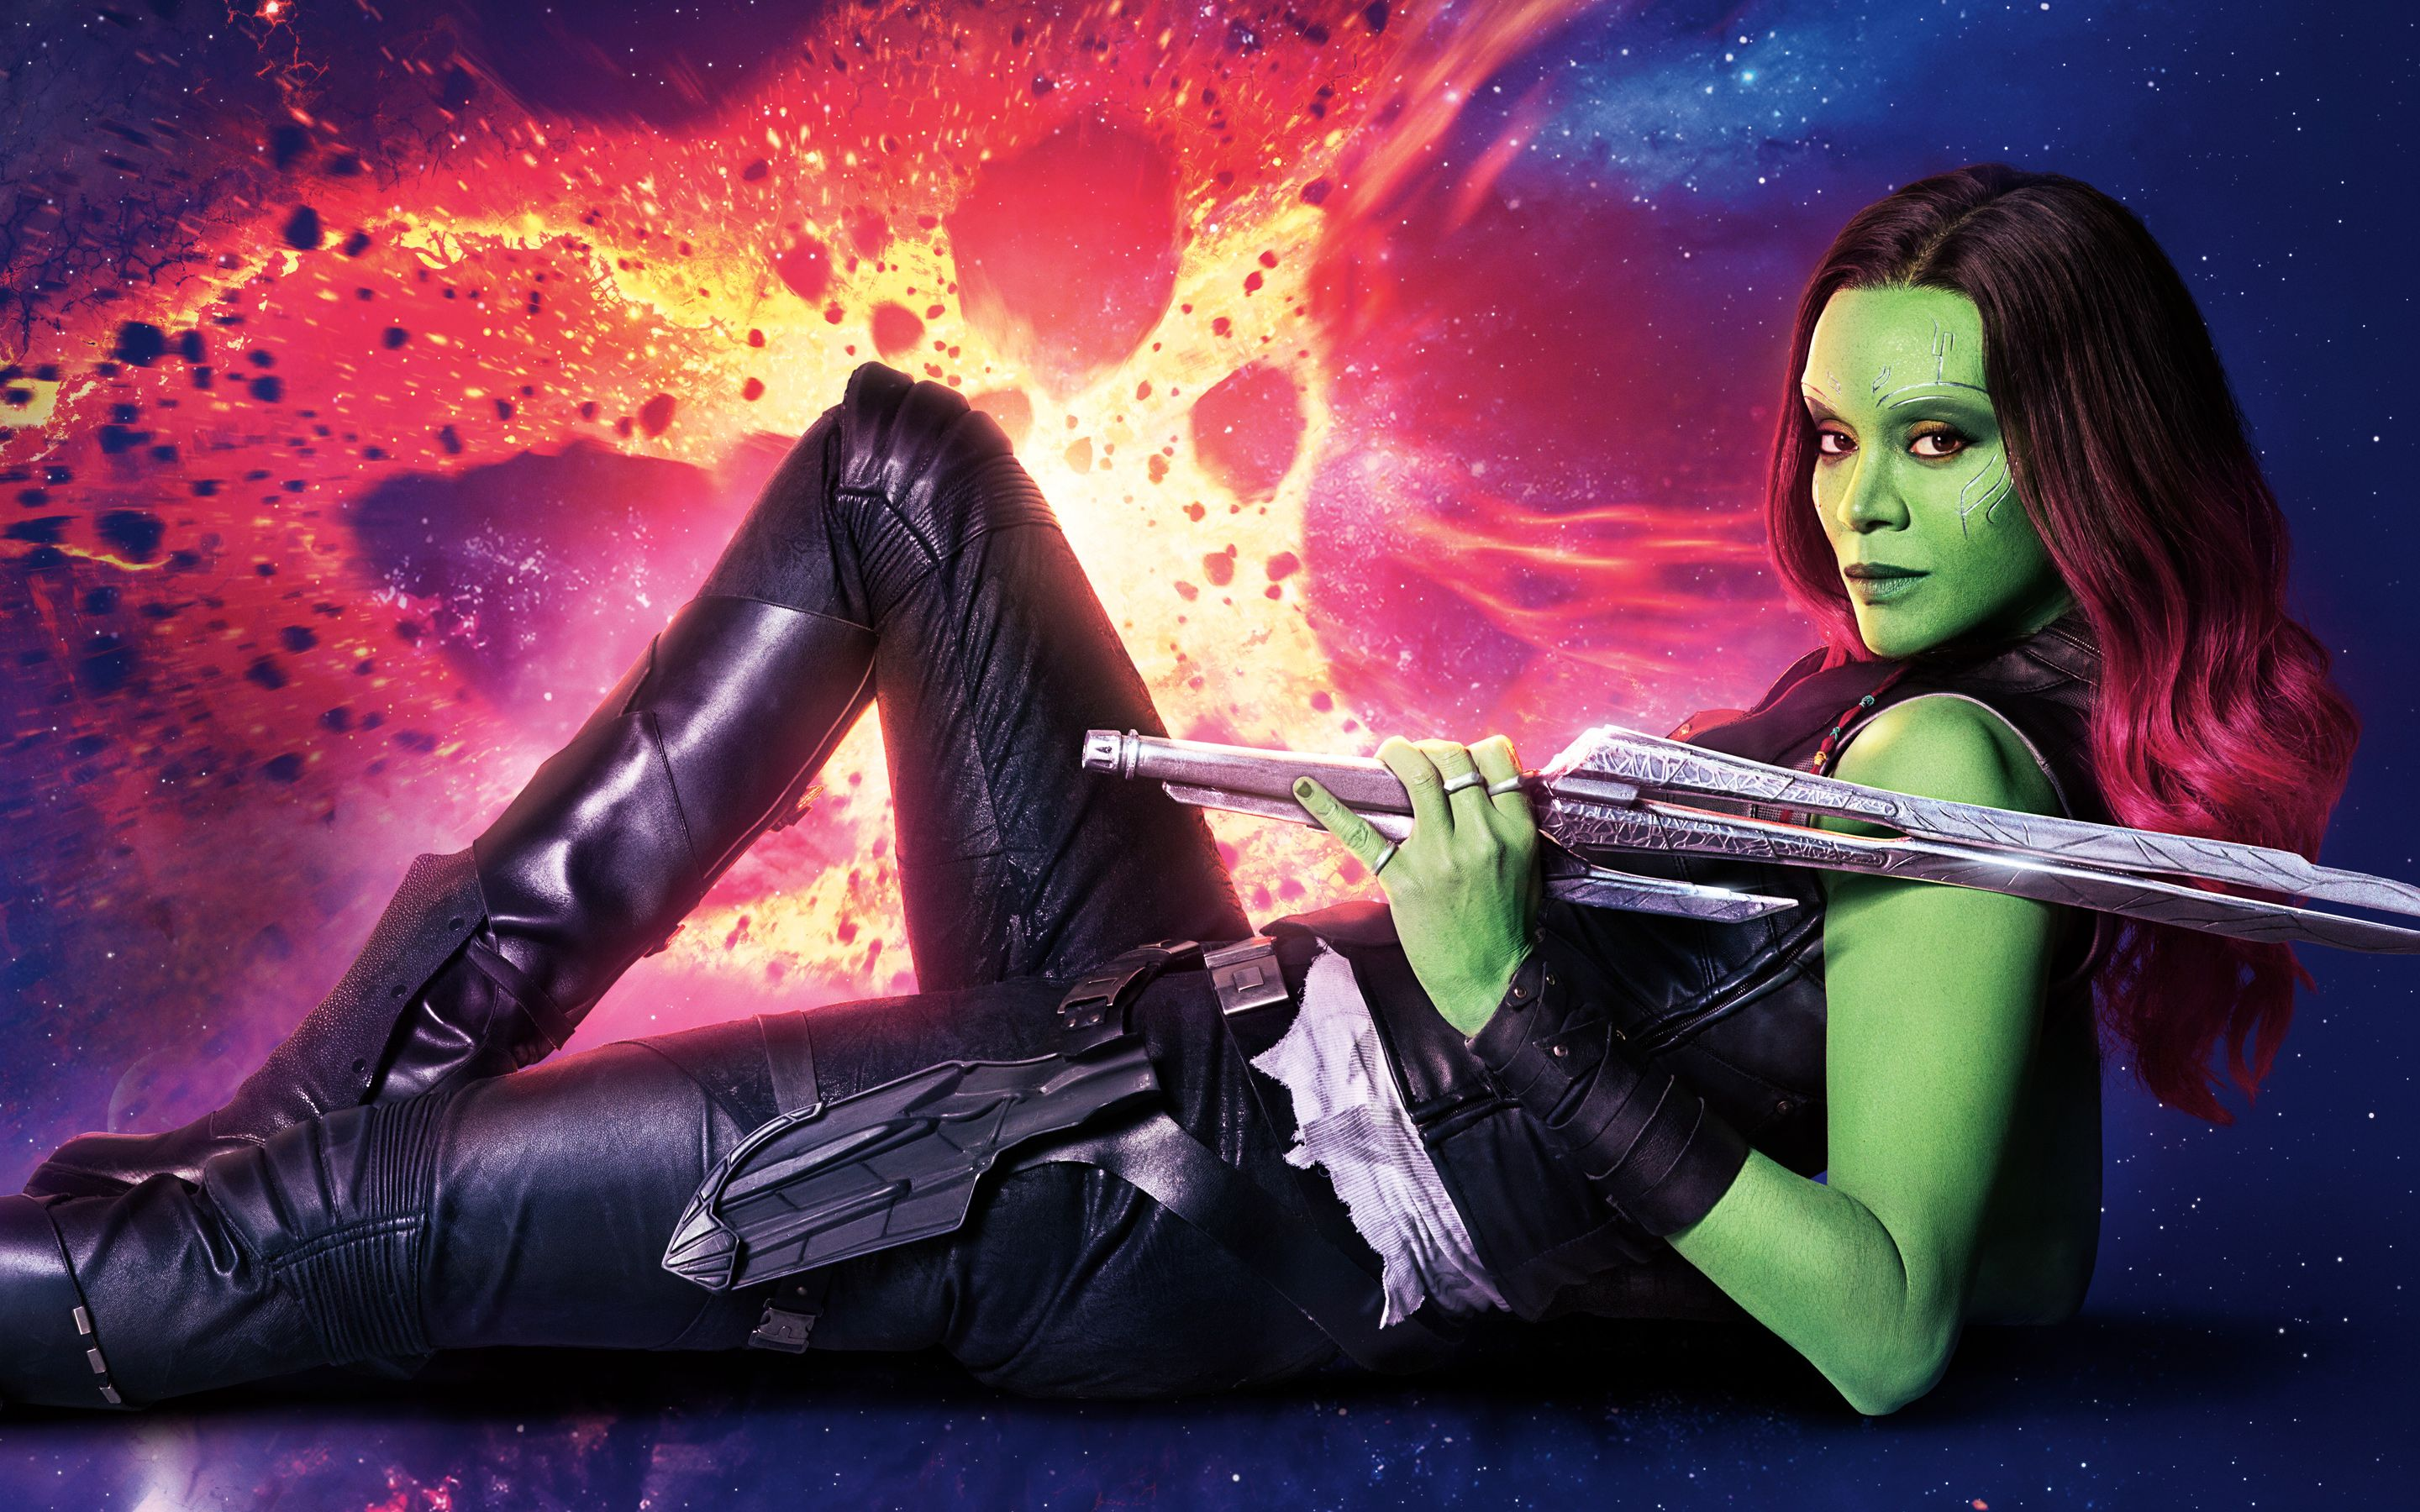 Gamora Guardians of the Galaxy Vol 2 4K 8K - This HD Gamora Guardians of the… wallpaper is based on Guardians of the Galaxy Vol. 2 Movie. It released on N/A and starring Chris Pratt, Karen Gillan, Vin Diesel, Sylvester Stallone. The storyline of this Action, Adventure, Sci-Fi Movie is about: Set to the backdrop of Awesome Mixtape #2,... - http://muviwallpapers.com/gamora-guardians-galaxy-vol-2-4k-8k.html #Gamora, #Guardians #Movies